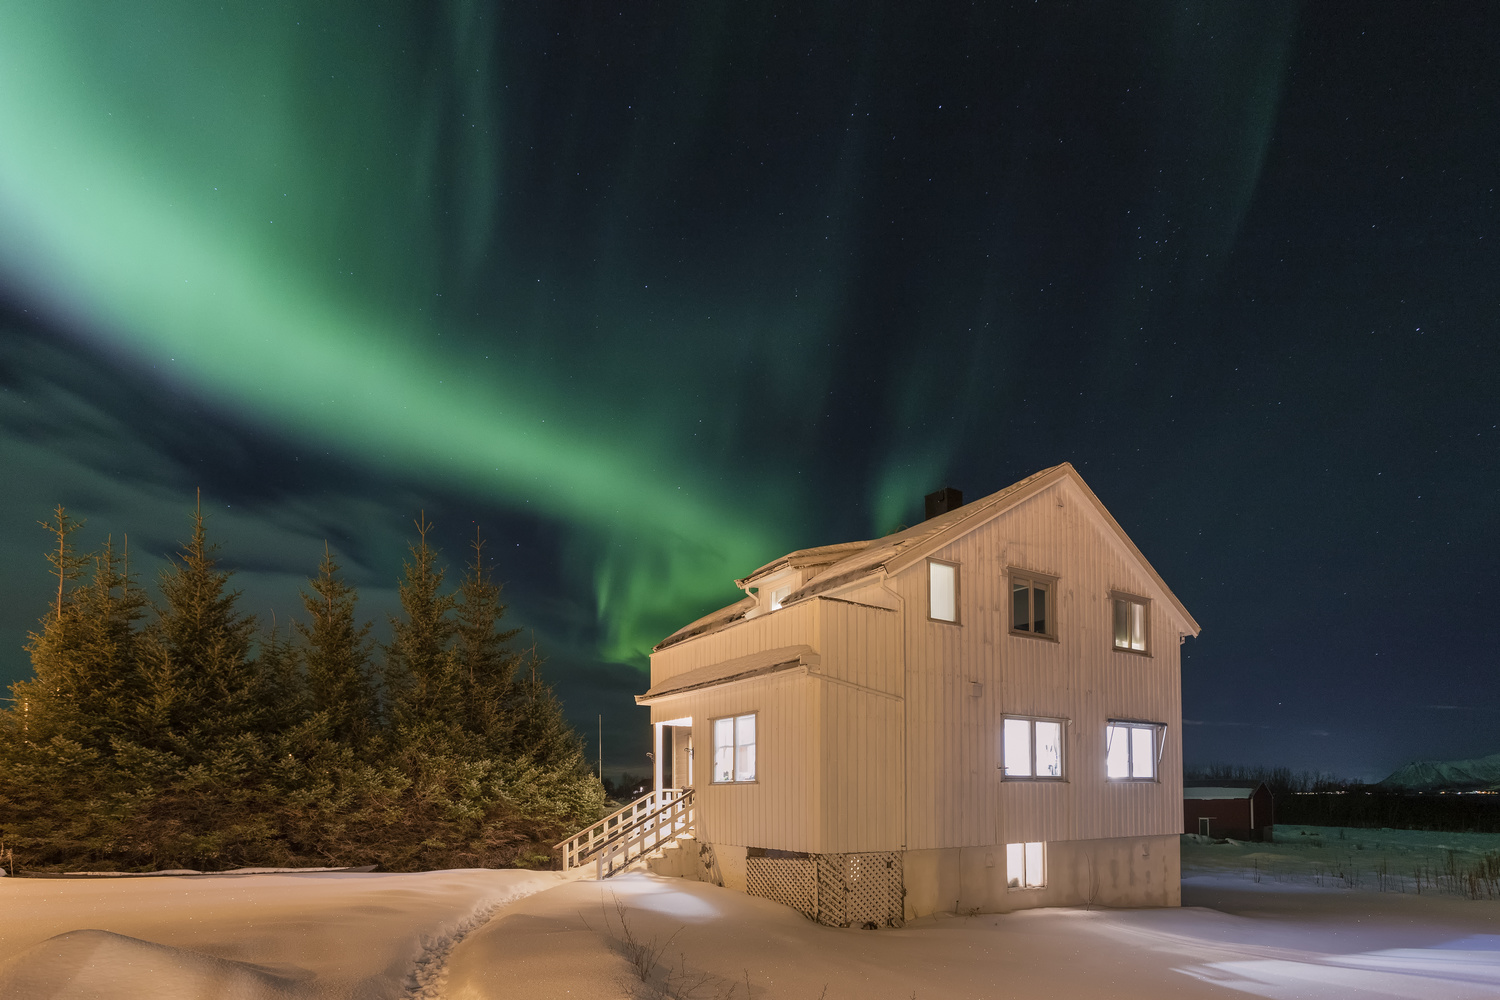 The Northern Light by Rickard Eriksson